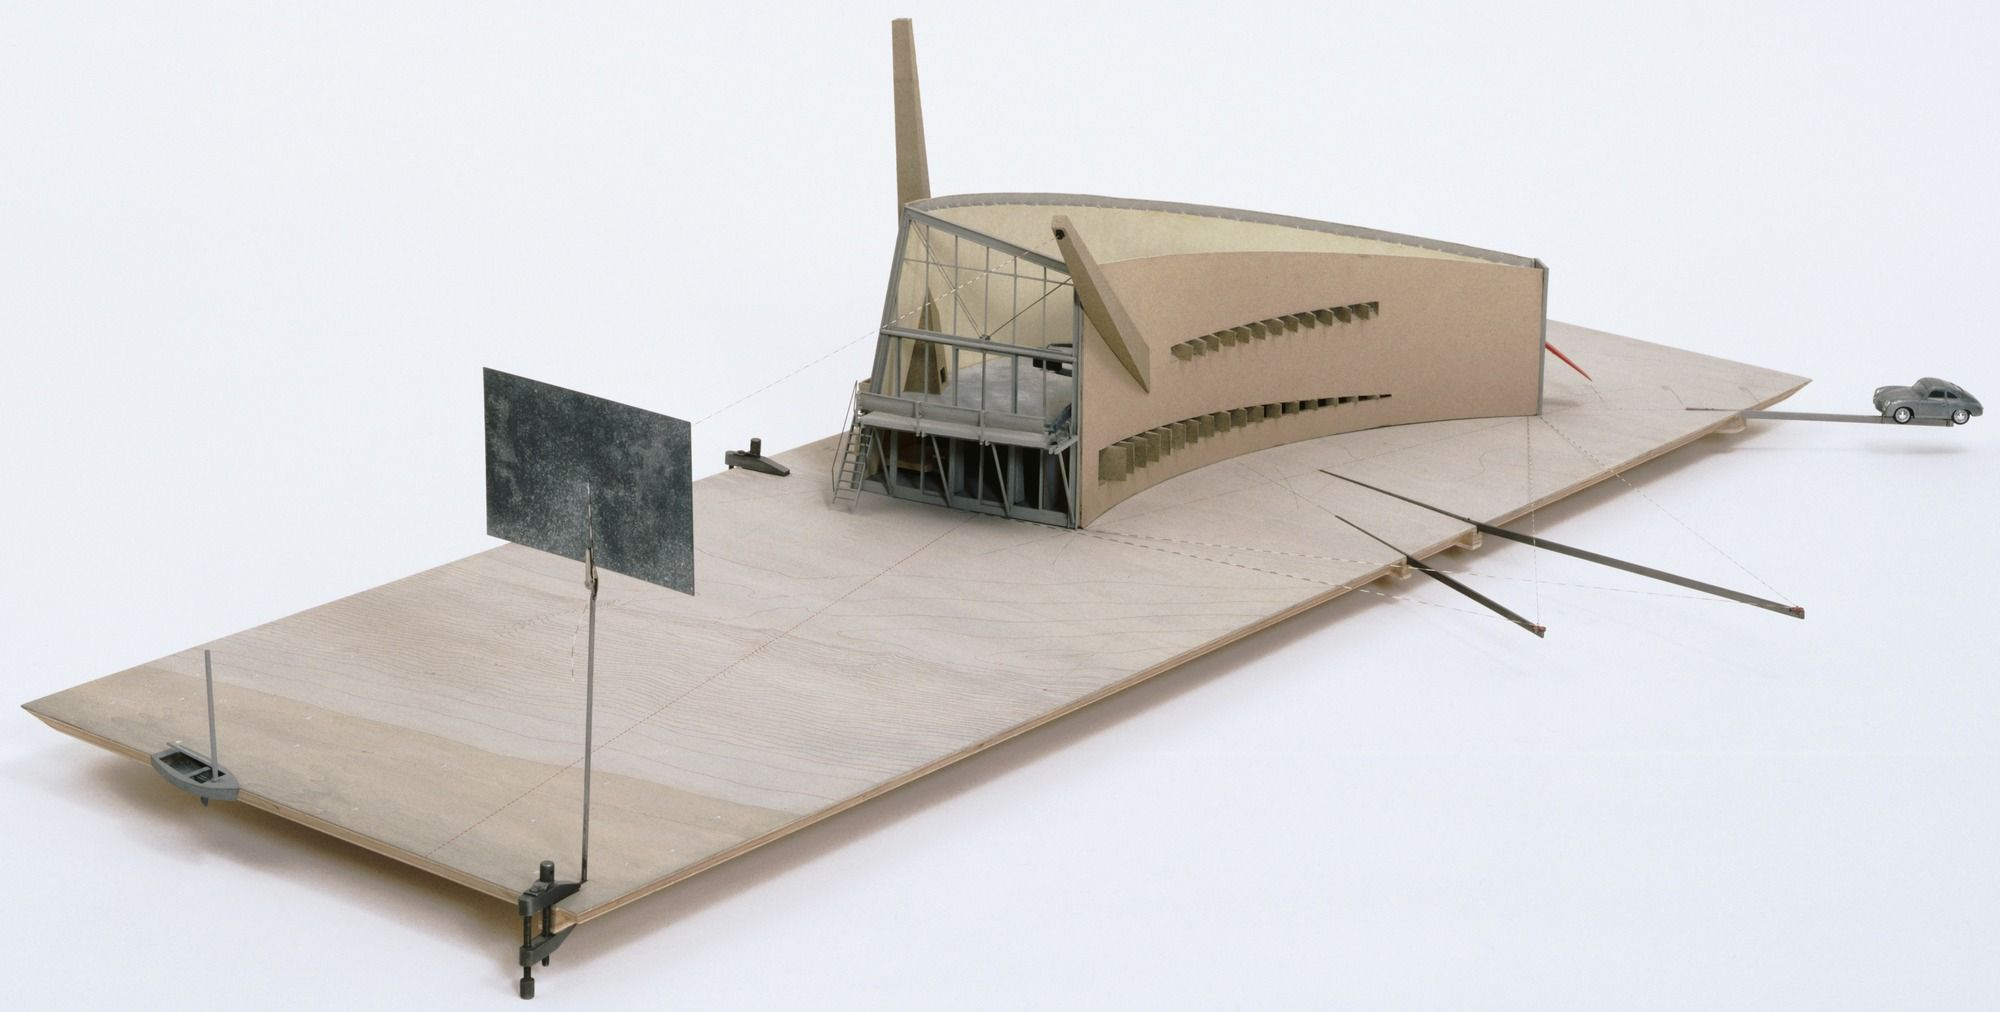 "Elizabeth Diller, Ricardo Scofidio. Slow House Project, North Haven, New York, Scale model 1/4""=1'. 1988-90"